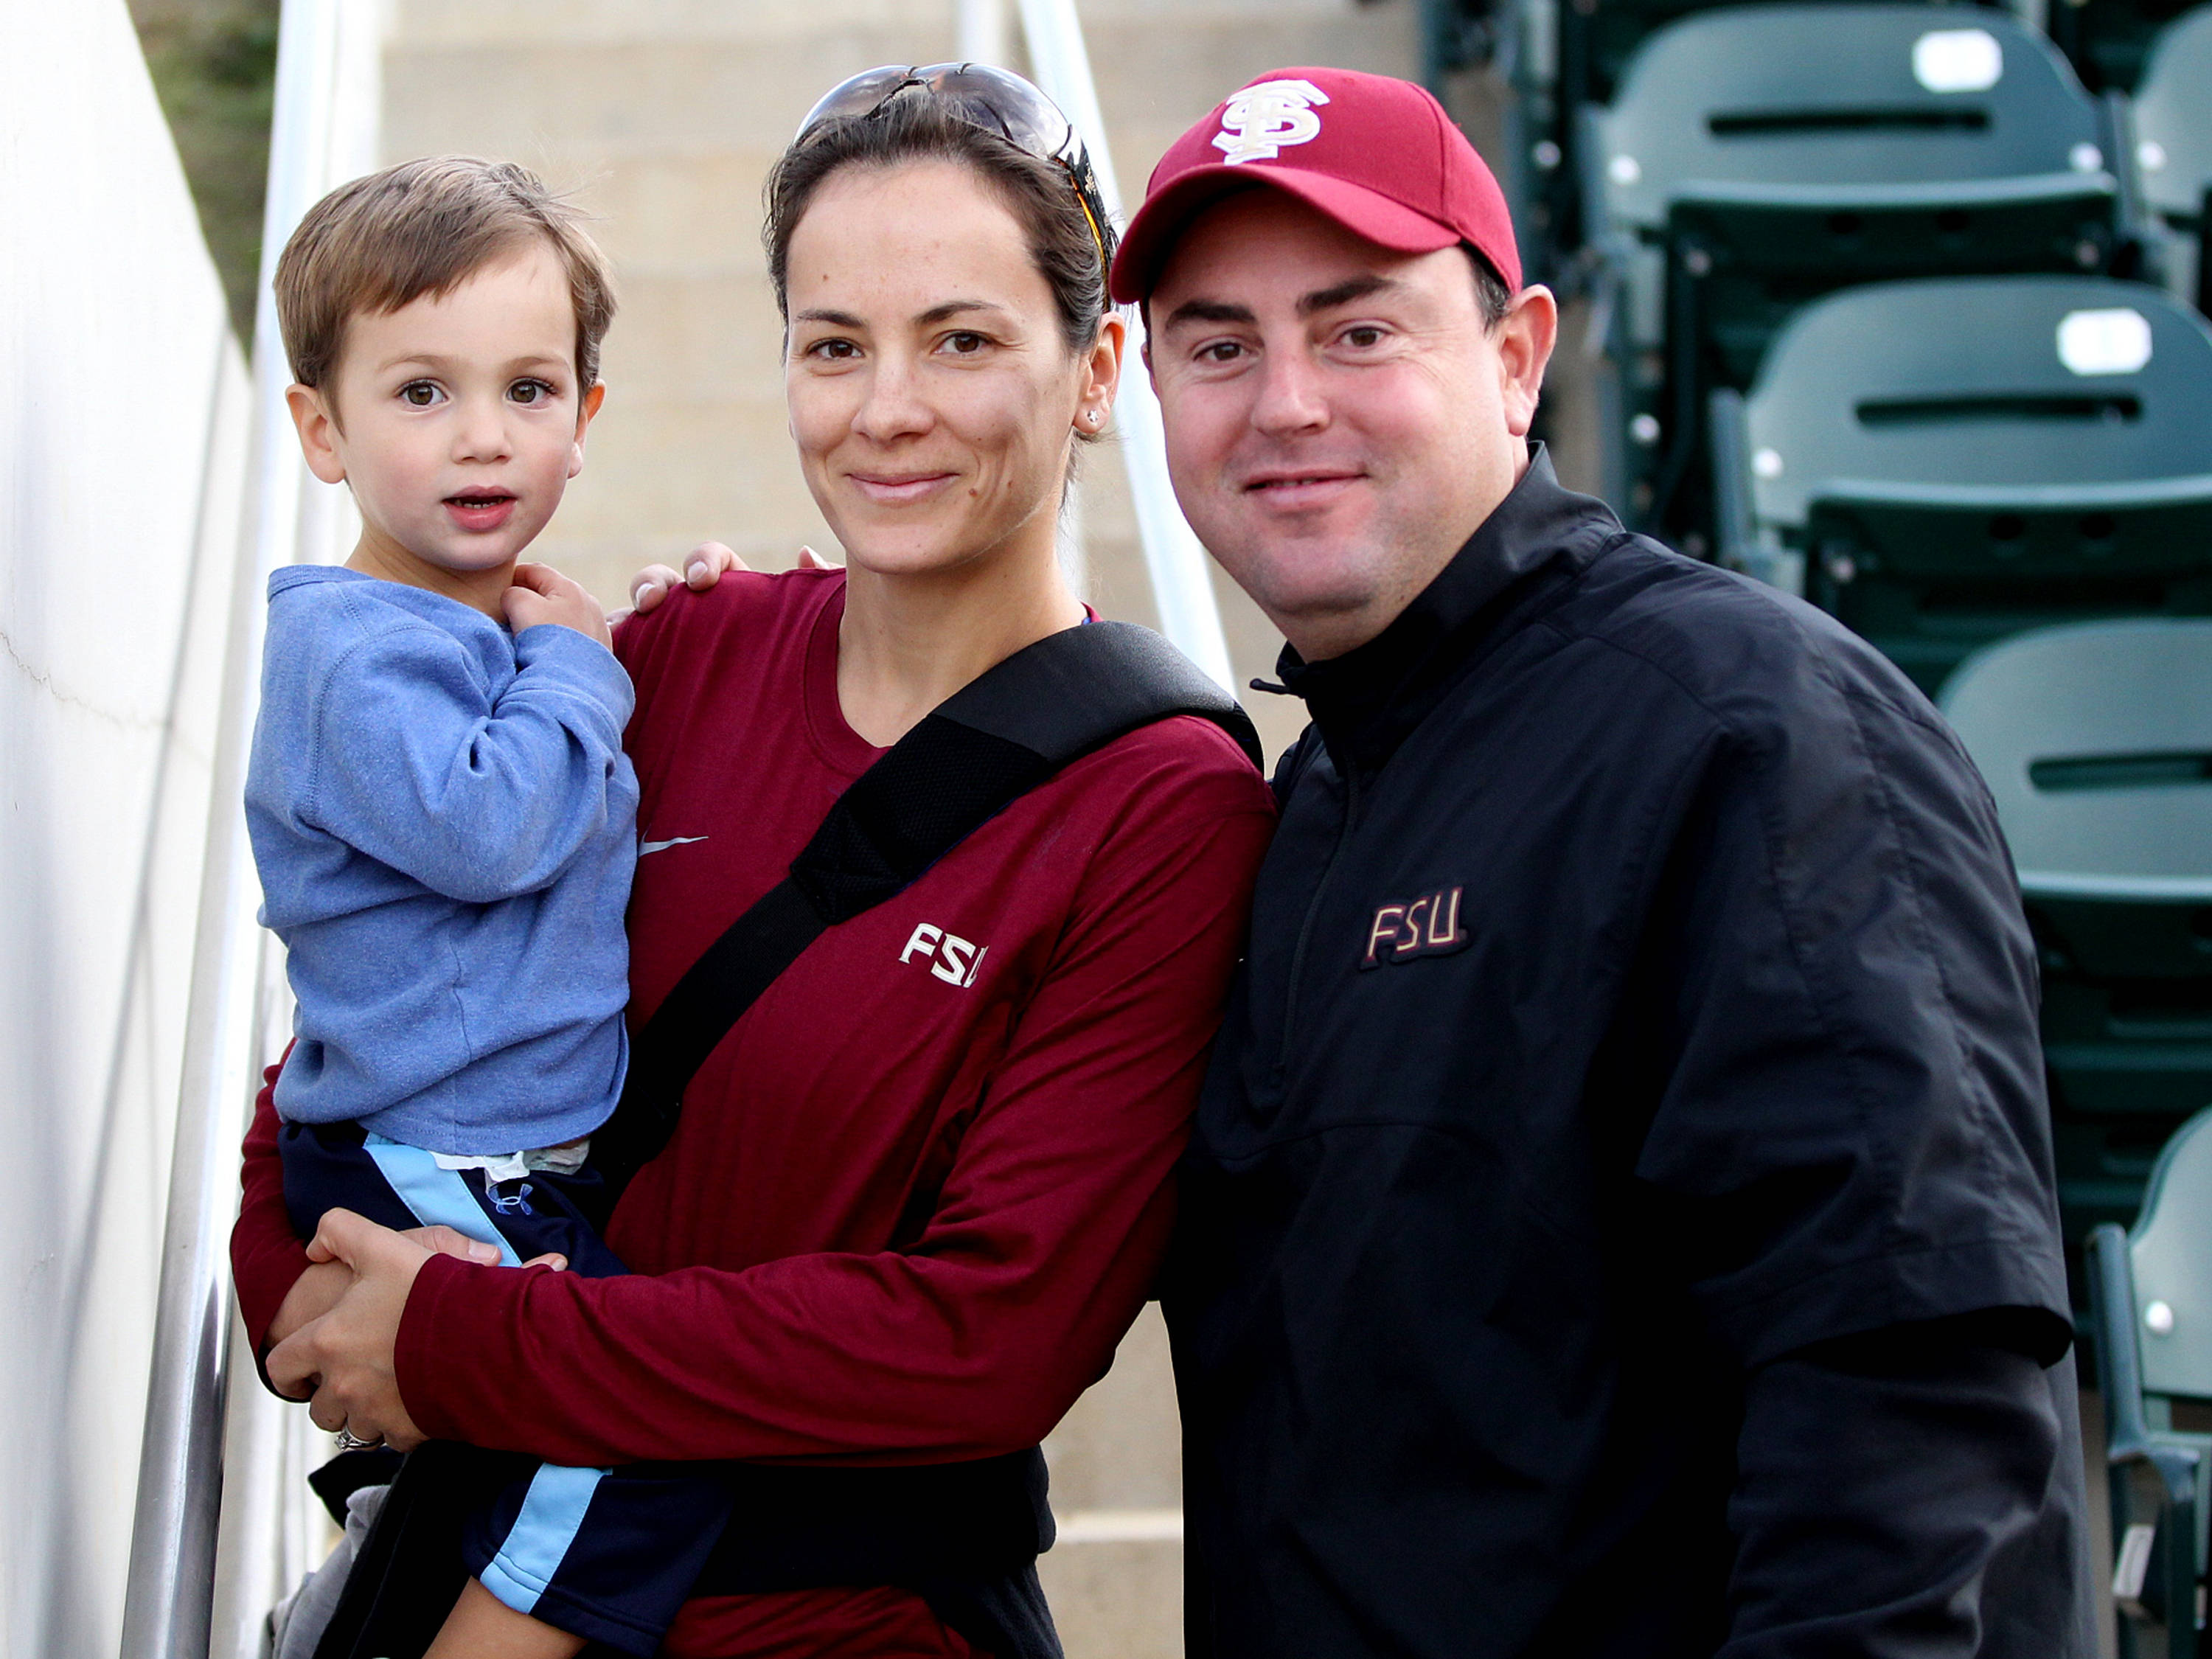 Assistant Coach Travis Wilson with his wife Jill and son Tyler, FSU vs FIU 03/12/13. (Photo by Steve Musco)